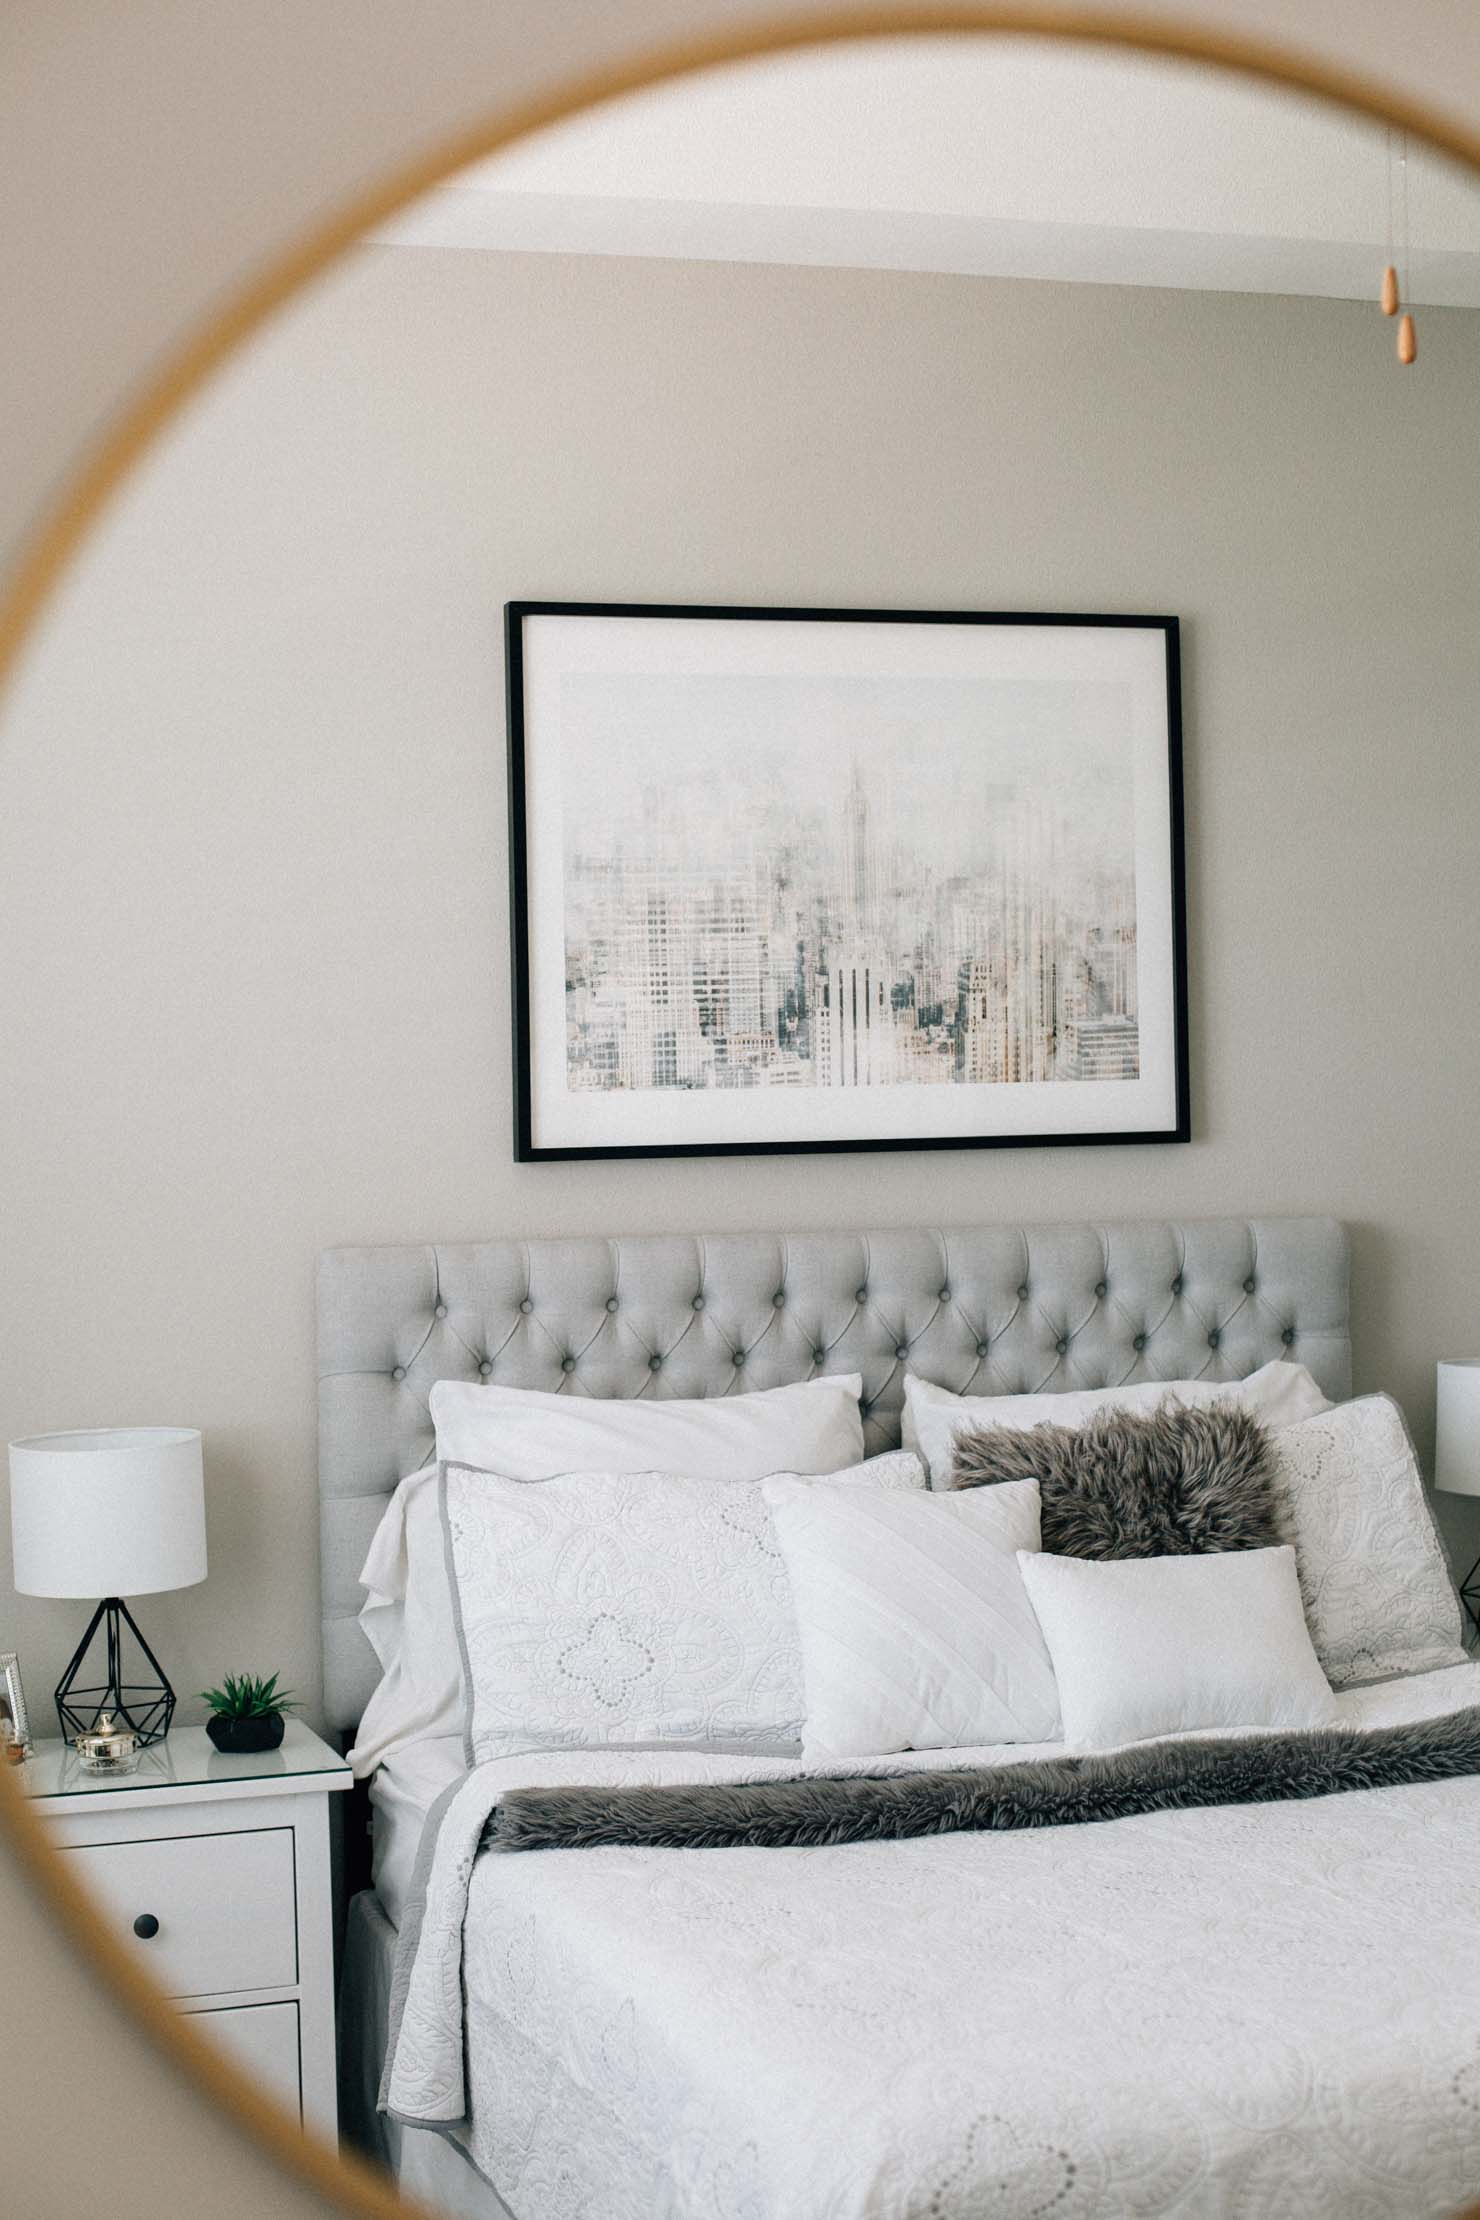 Lifestyle blogger Lilly Beltran of Daily Craving shares her master bedroom reveal with Minted art